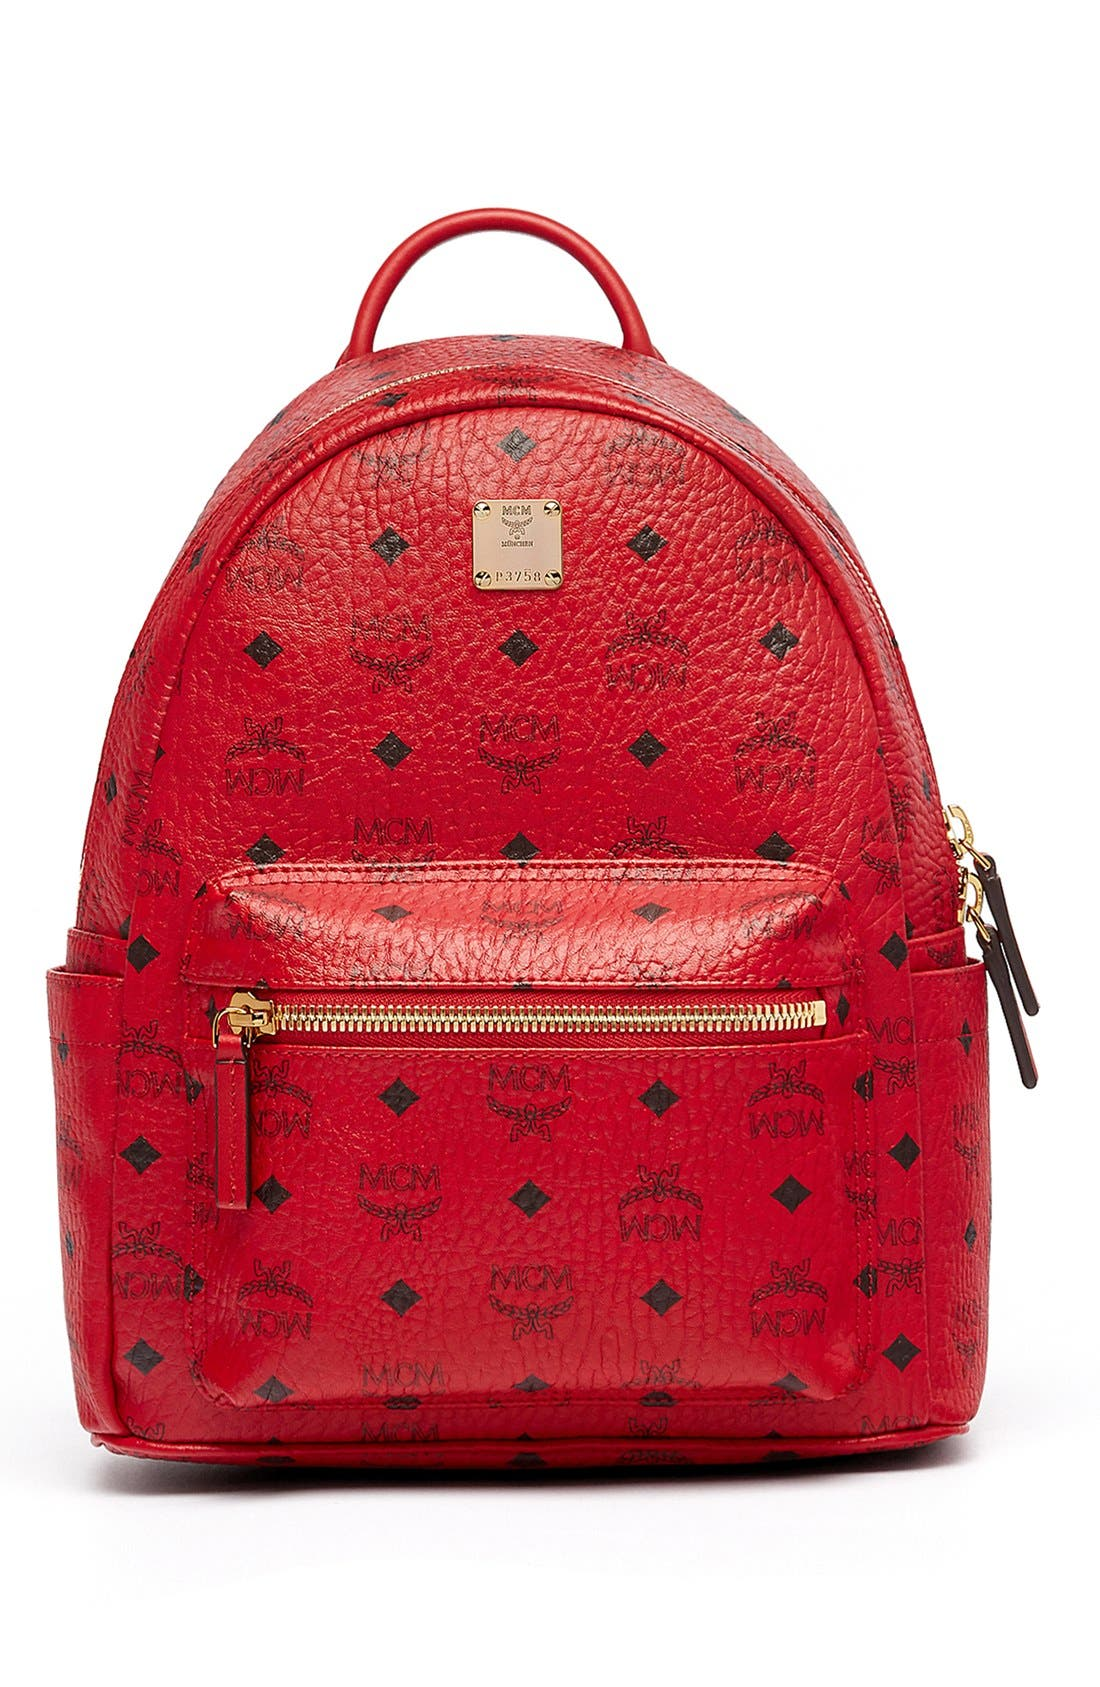 Alternate Image 1 Selected - MCM 'Small Stark' Coated Canvas Backpack